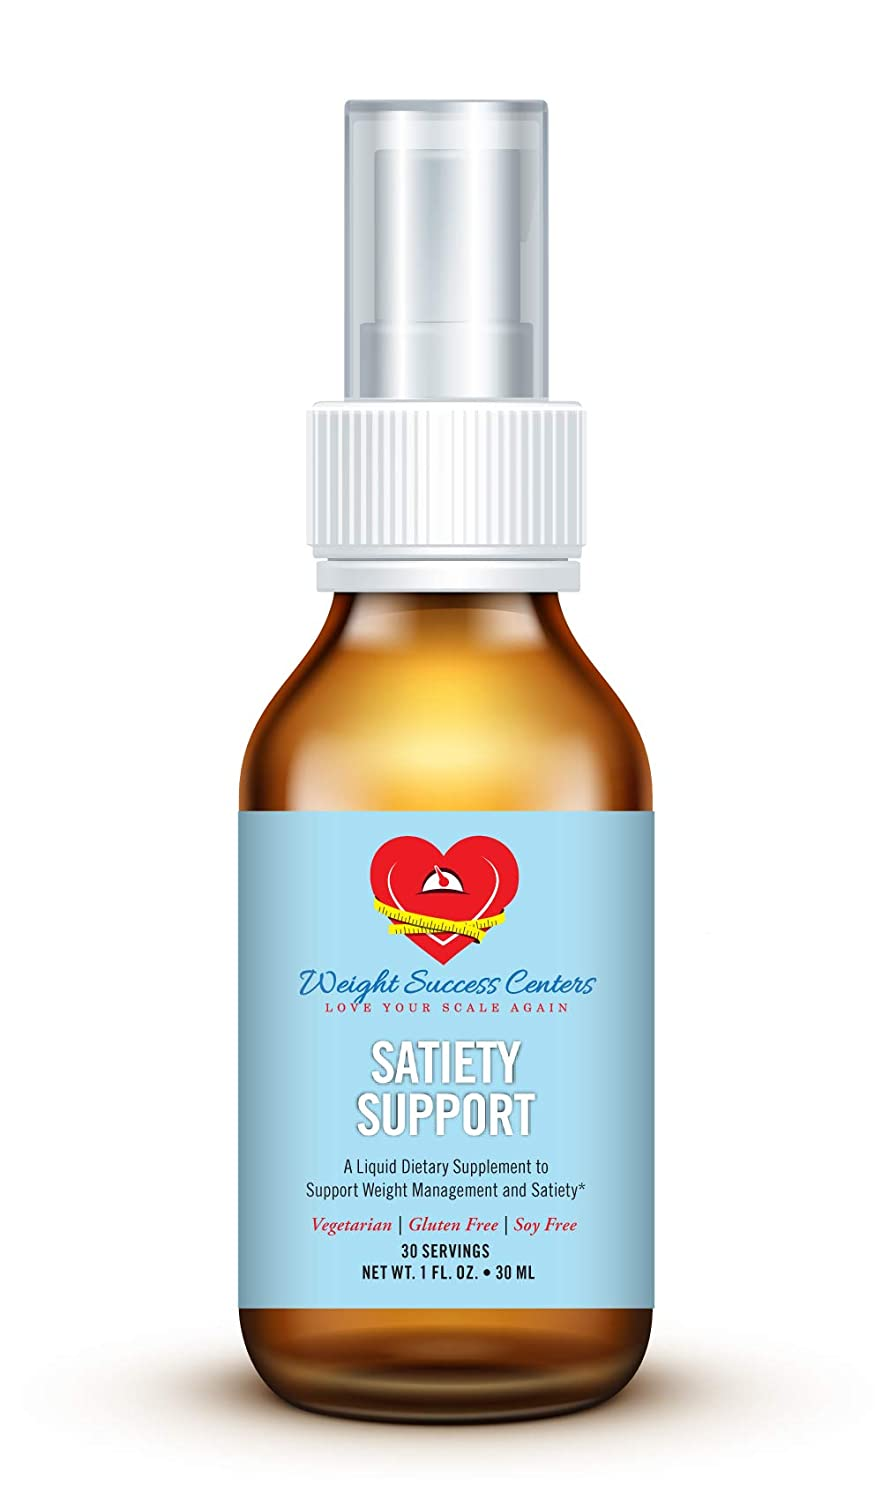 Satiety Support Hunger Control Spray Natural Appetite Suppressant Made with Dyglofit All-Natural Hunger Suppressant Suitable for Vegetarians Gluten and Soy Free 30 Servings